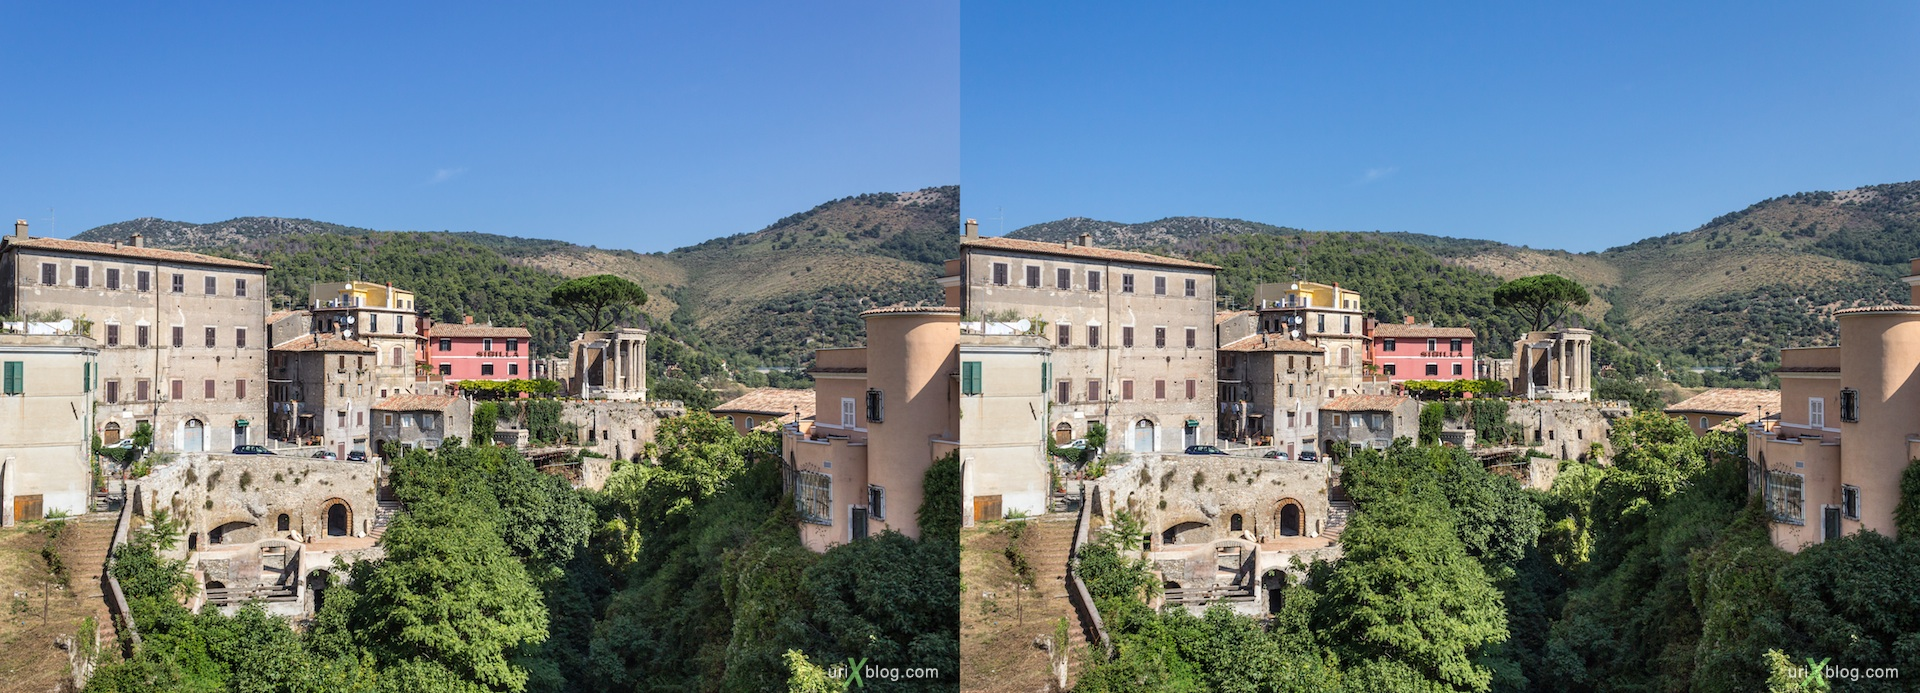 2012, Tivoli, Italy, villa Gregoriana, 3D, stereo pair, cross-eyed, crossview